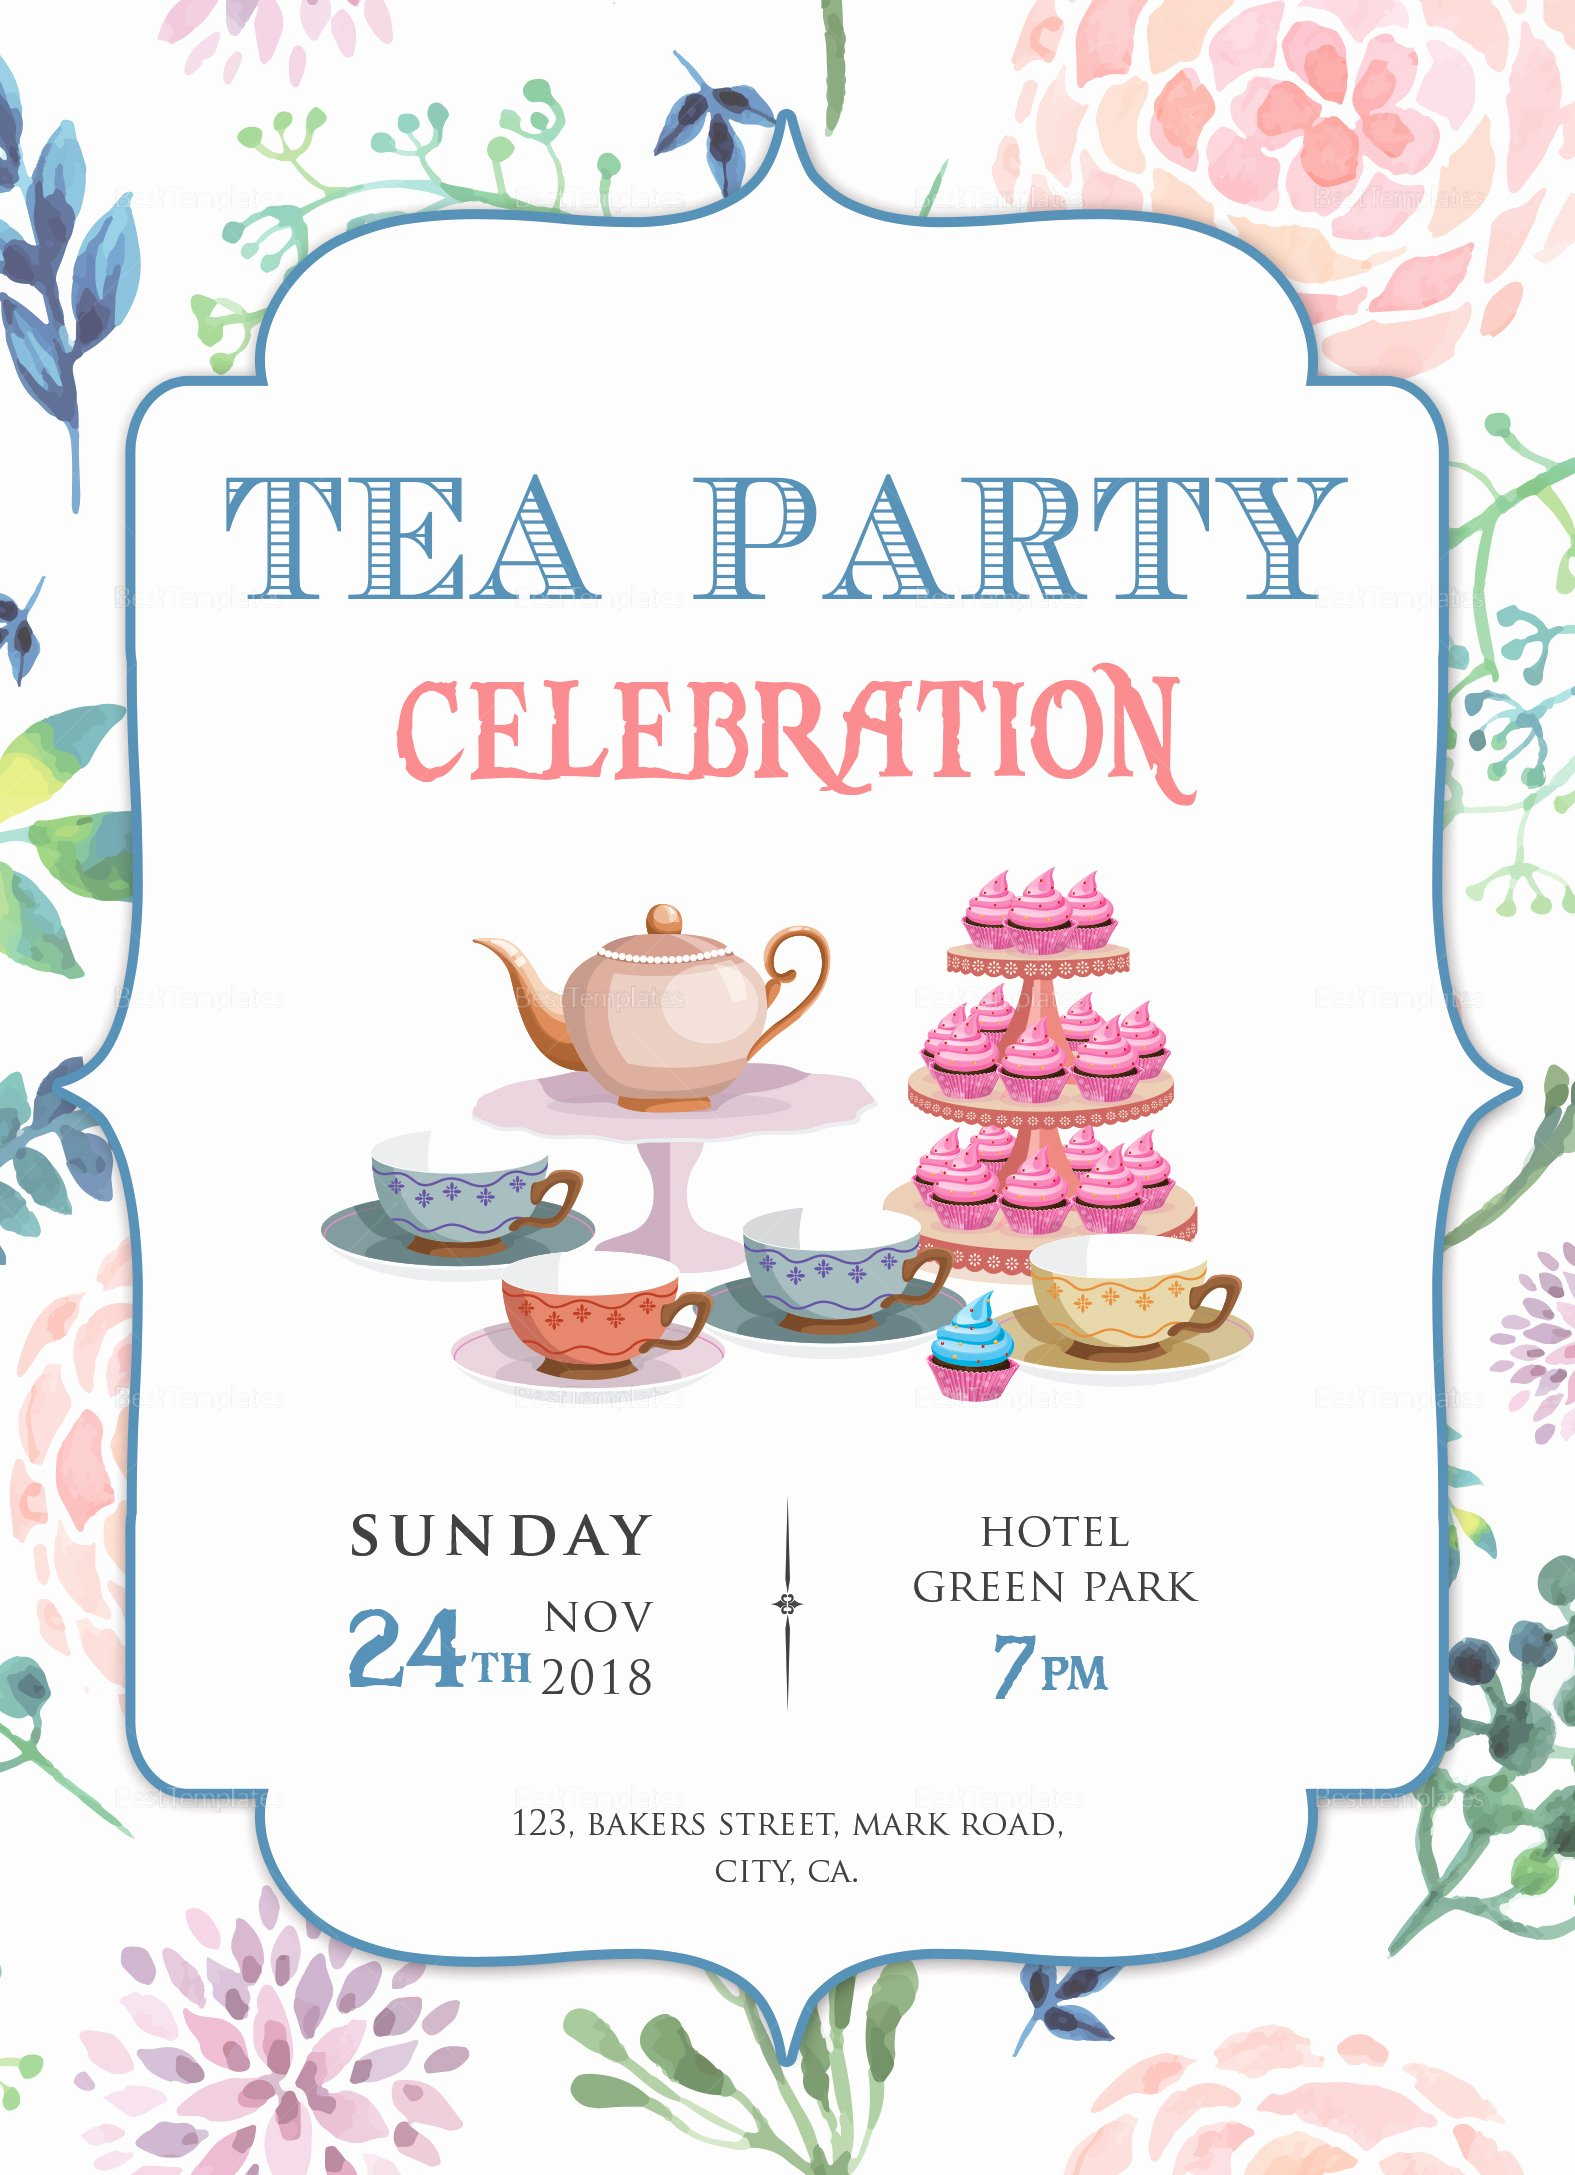 Elegant Tea Party Invitations Best Of Elegant Tea Party Invitation Design Template In Word Psd Publisher